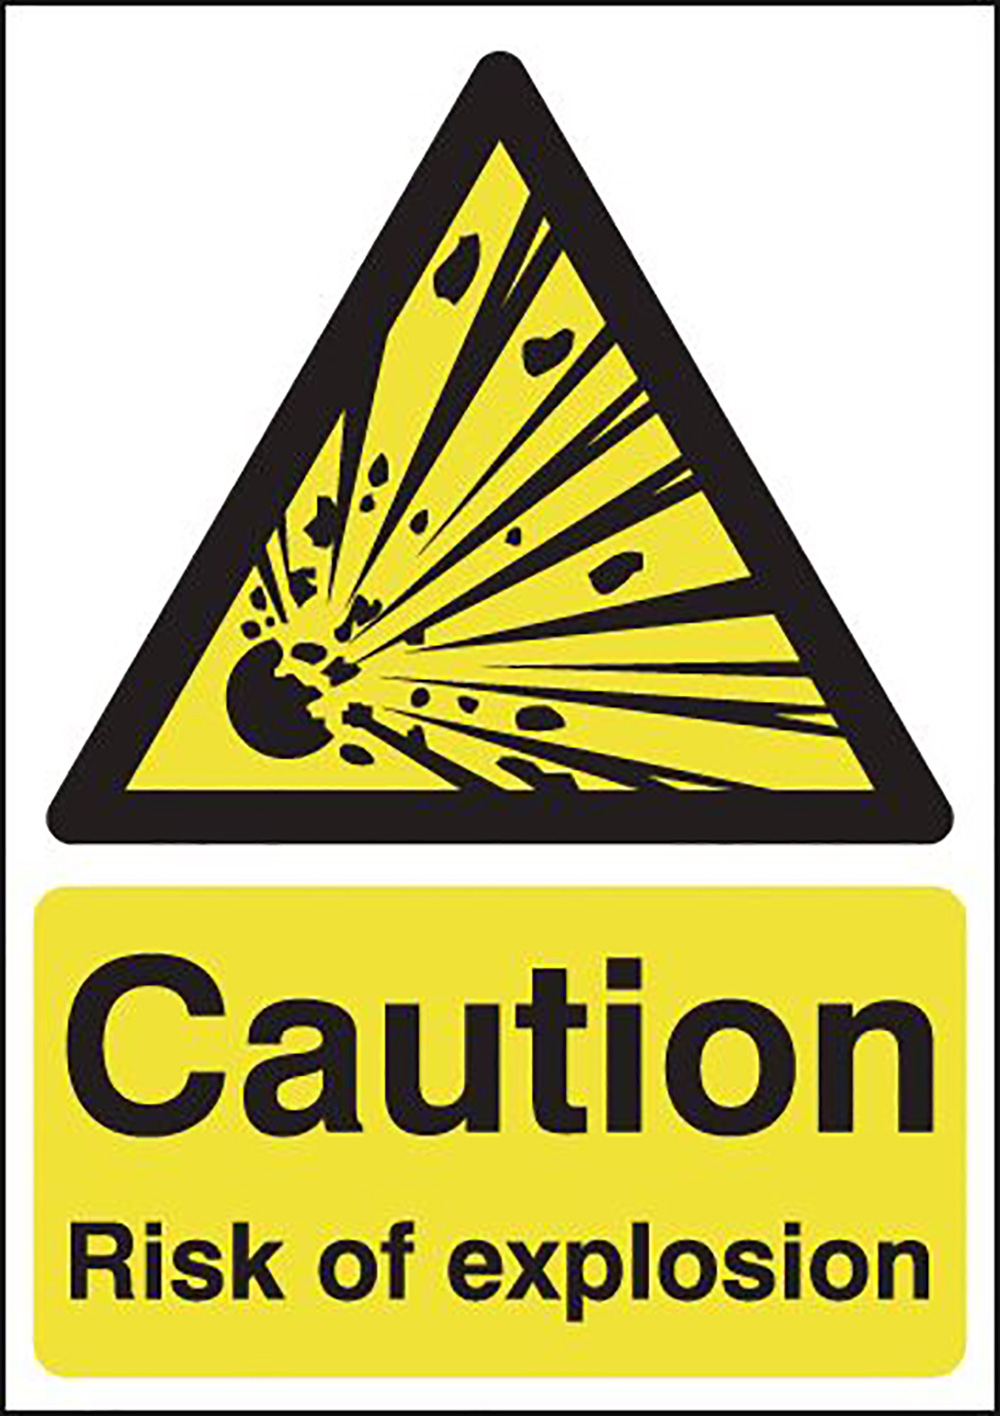 Caution Risk of Explosion  297x210mm 1.2mm Rigid Plastic Safety Sign